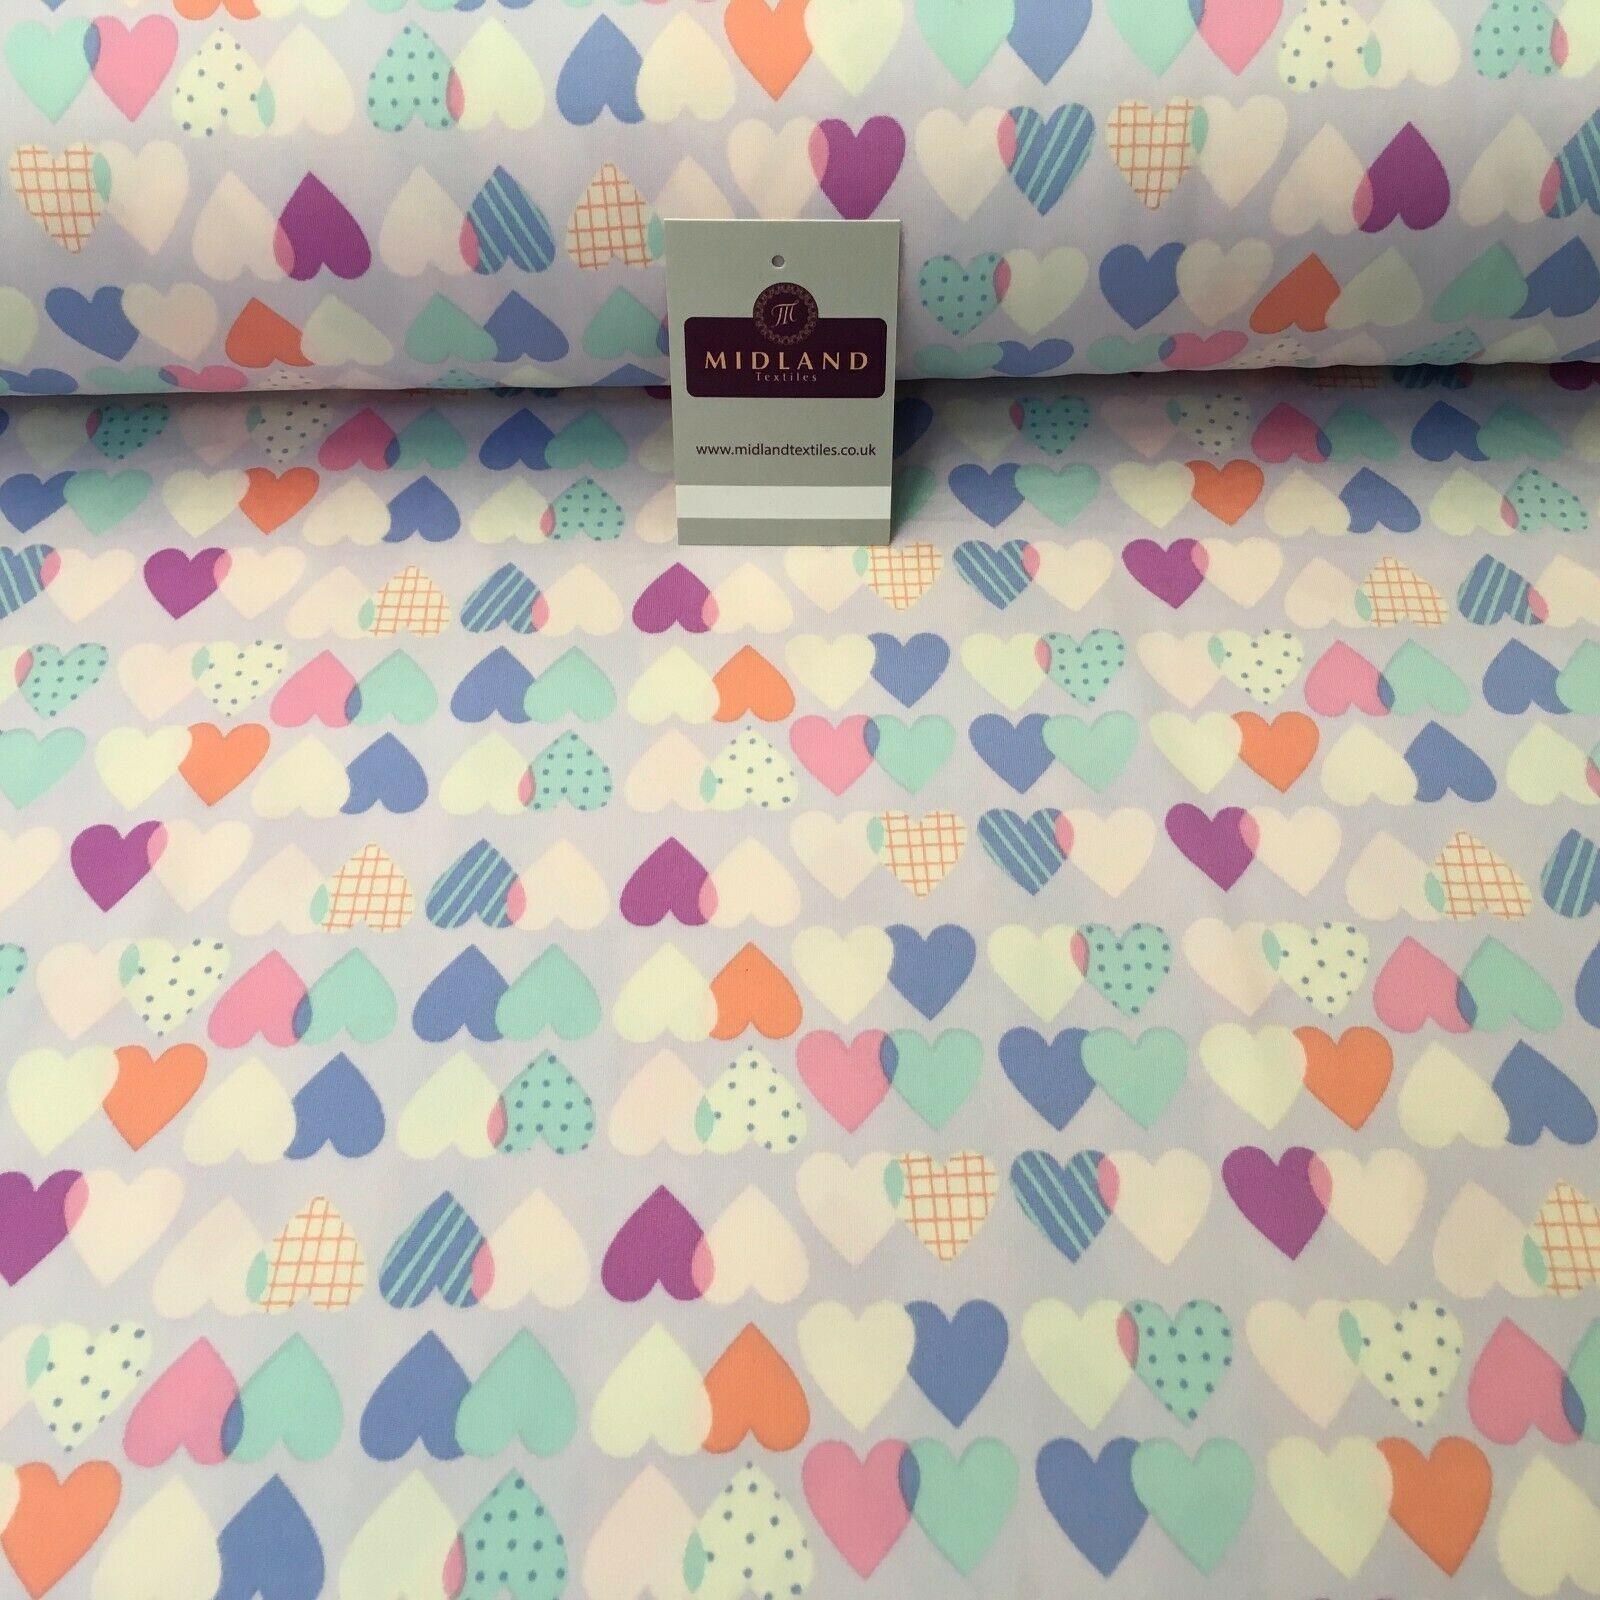 Lilac Hearts Printed Brushed Jersey Dress fabric 150cm Wide MK1106-10 Mtex